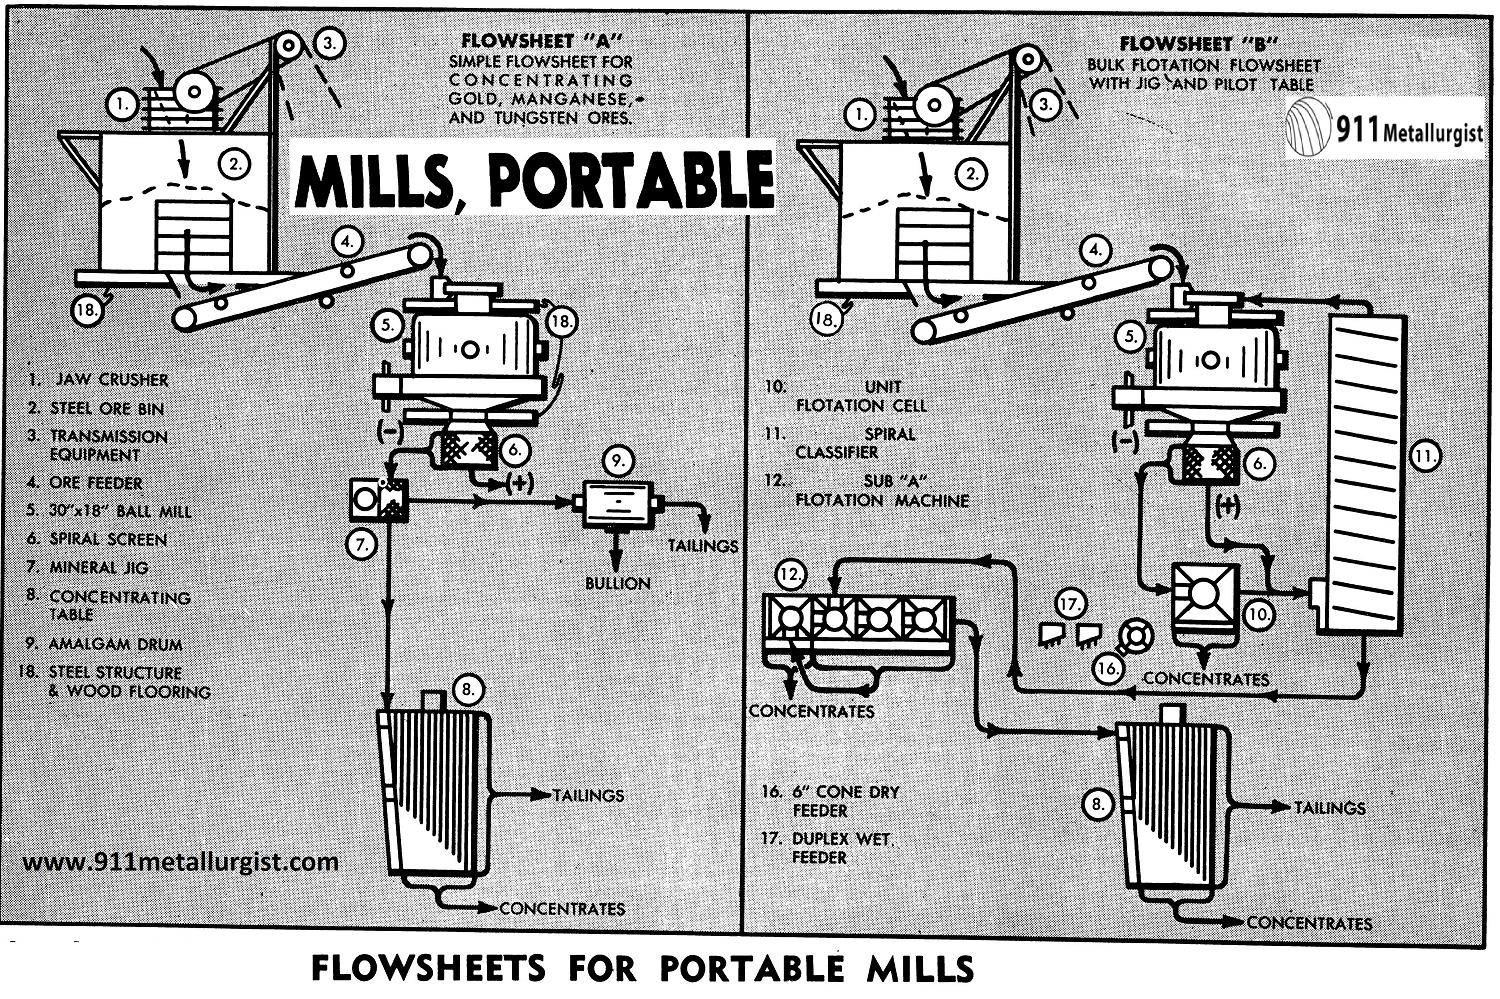 Flowsheets for Portable Mills